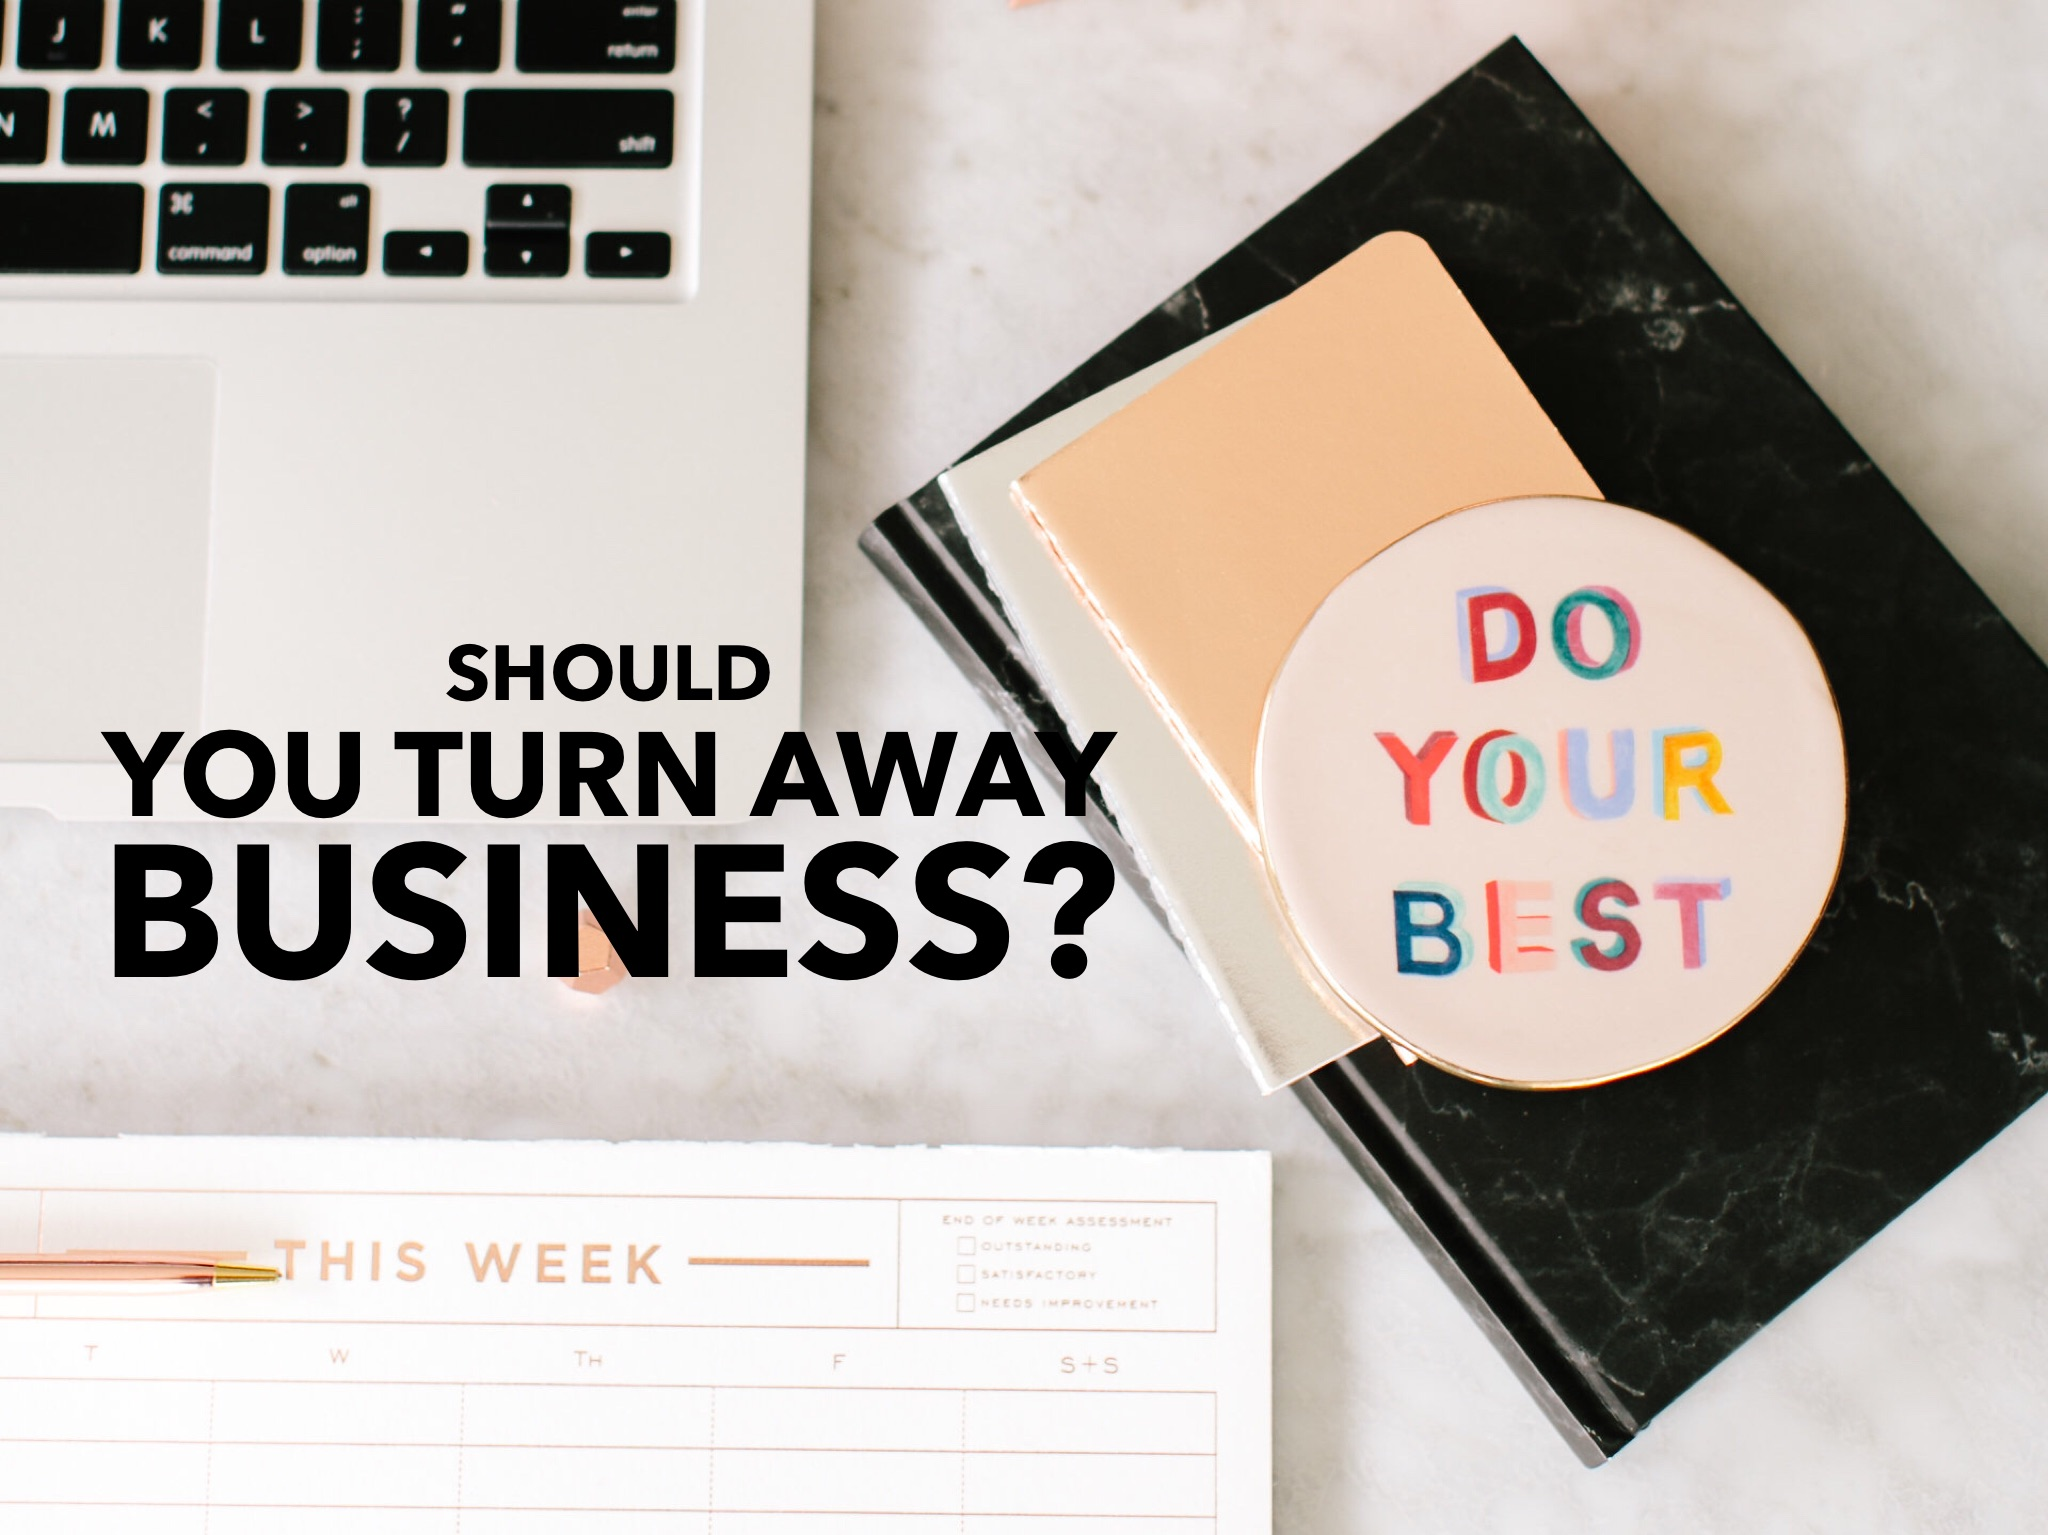 Should_You_Turn_Away_Business